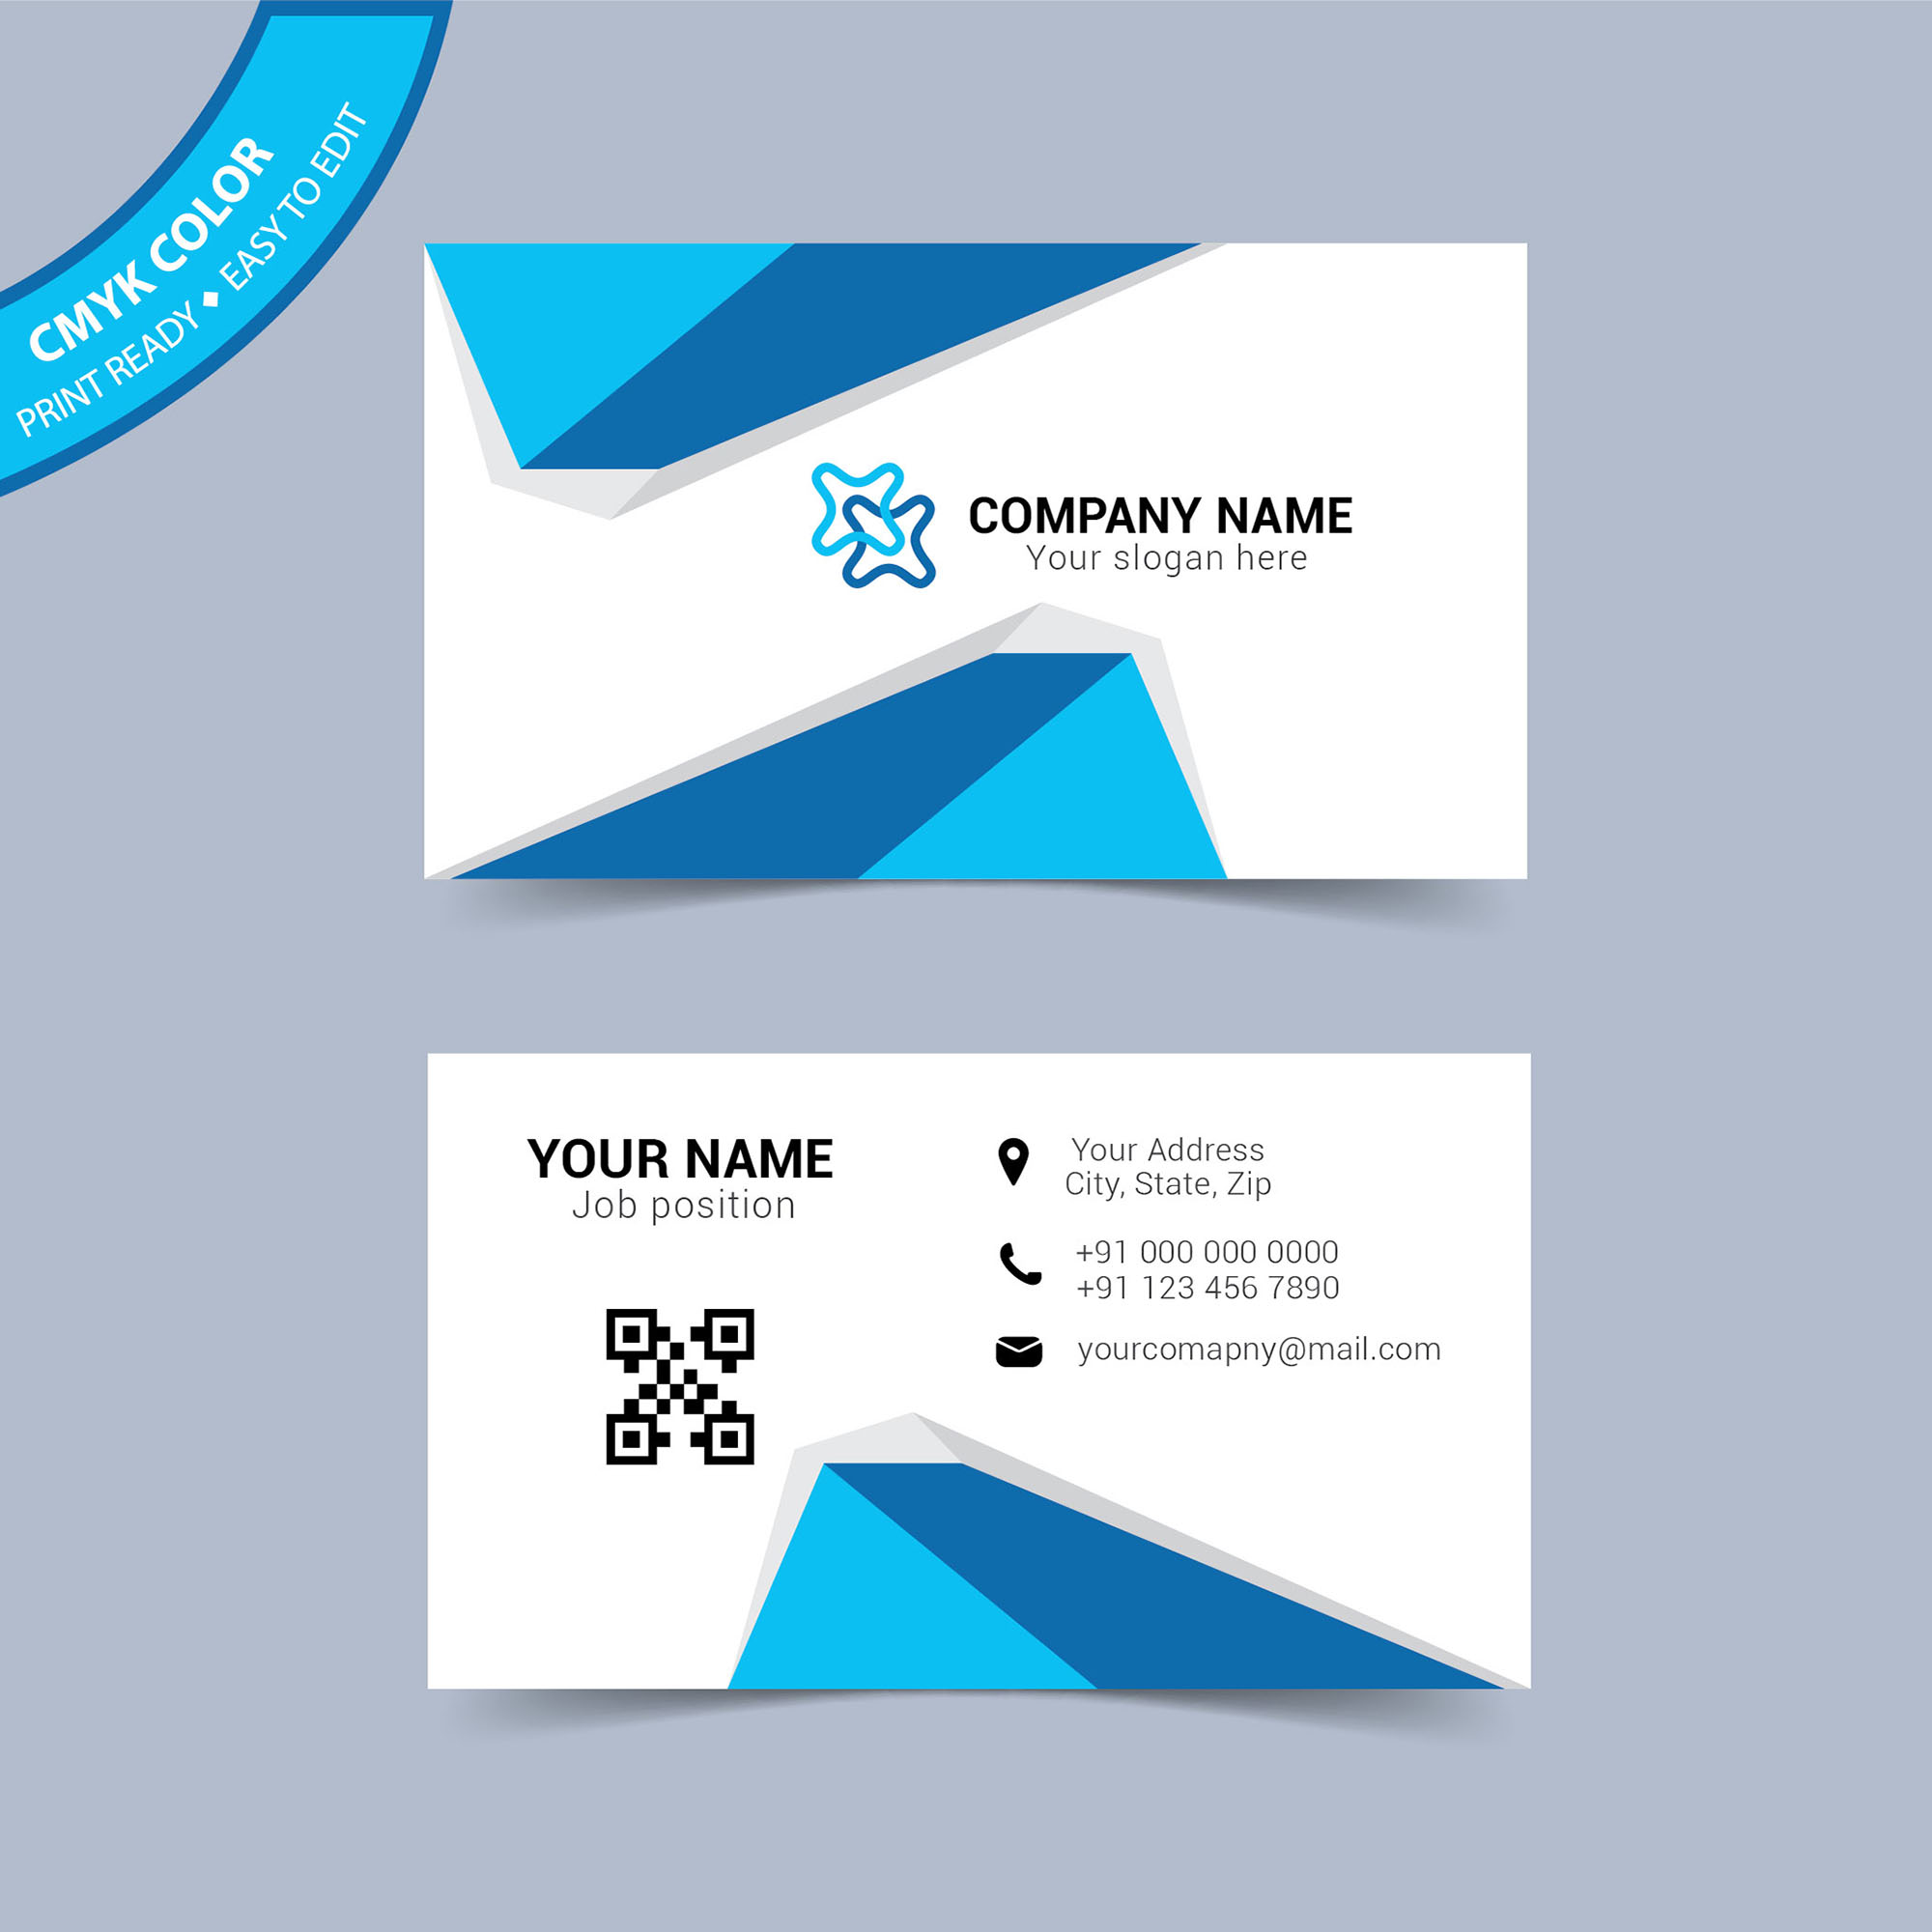 Business card layout template free download wisxi business card business cards business card design business card template design templates reheart Image collections